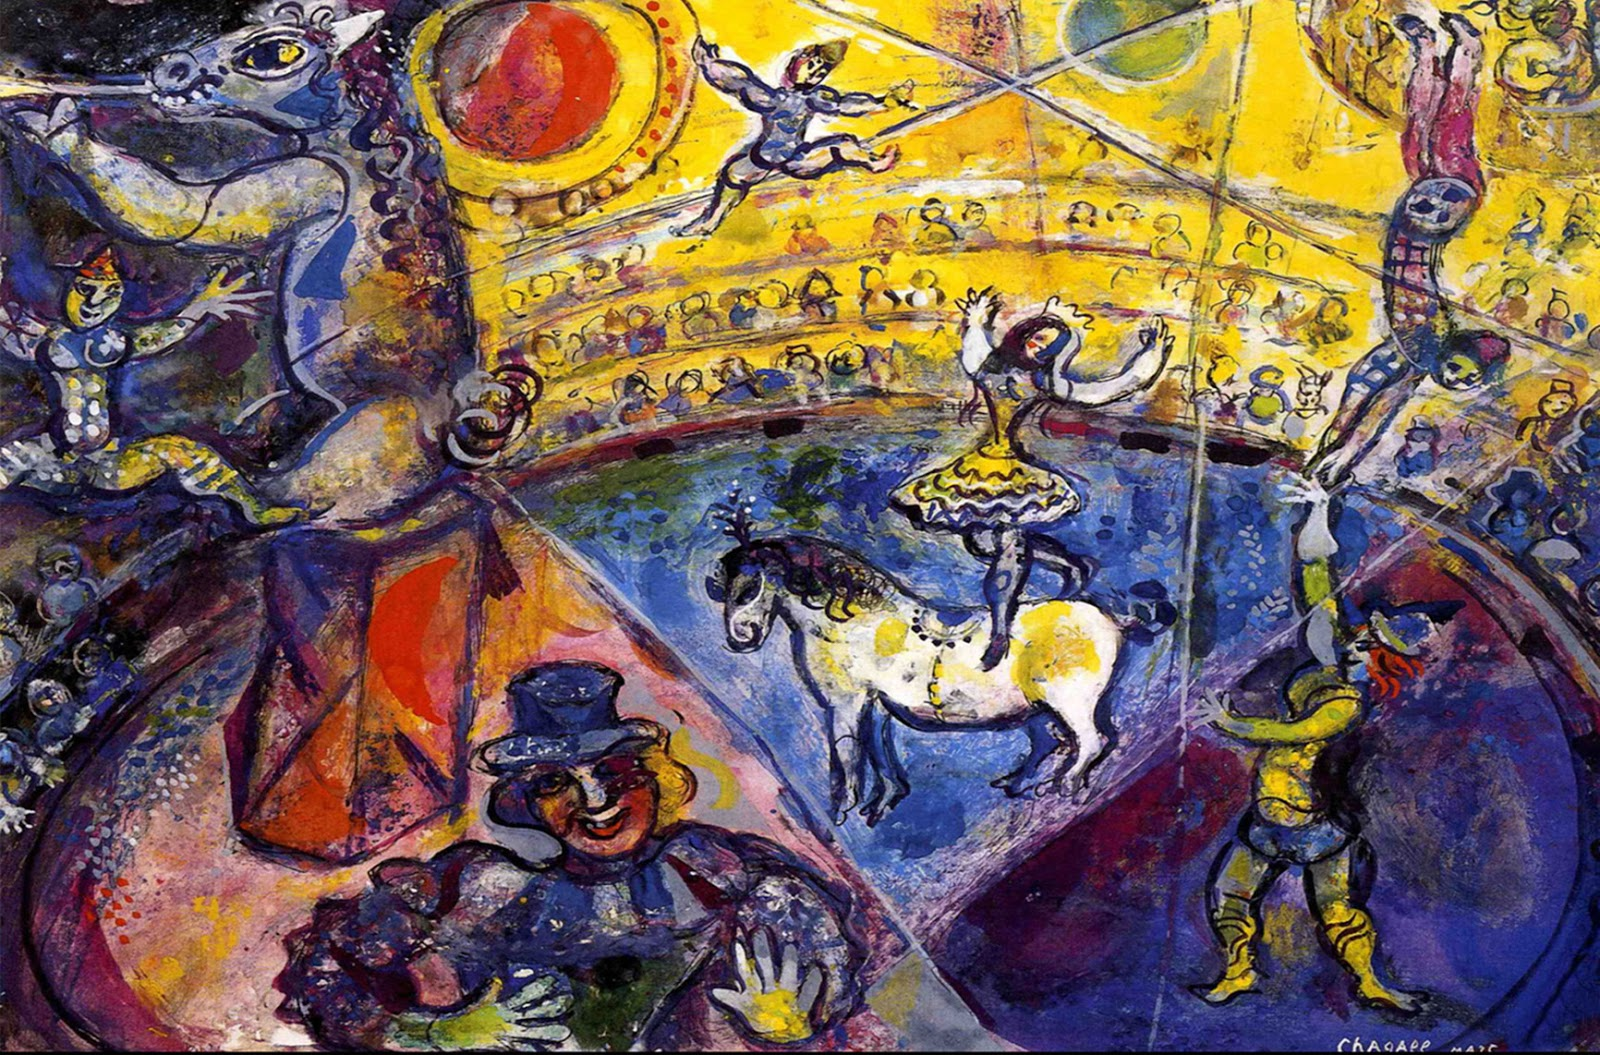 Marc Chagall – The Bible, Love & Mozart (1887-1985)